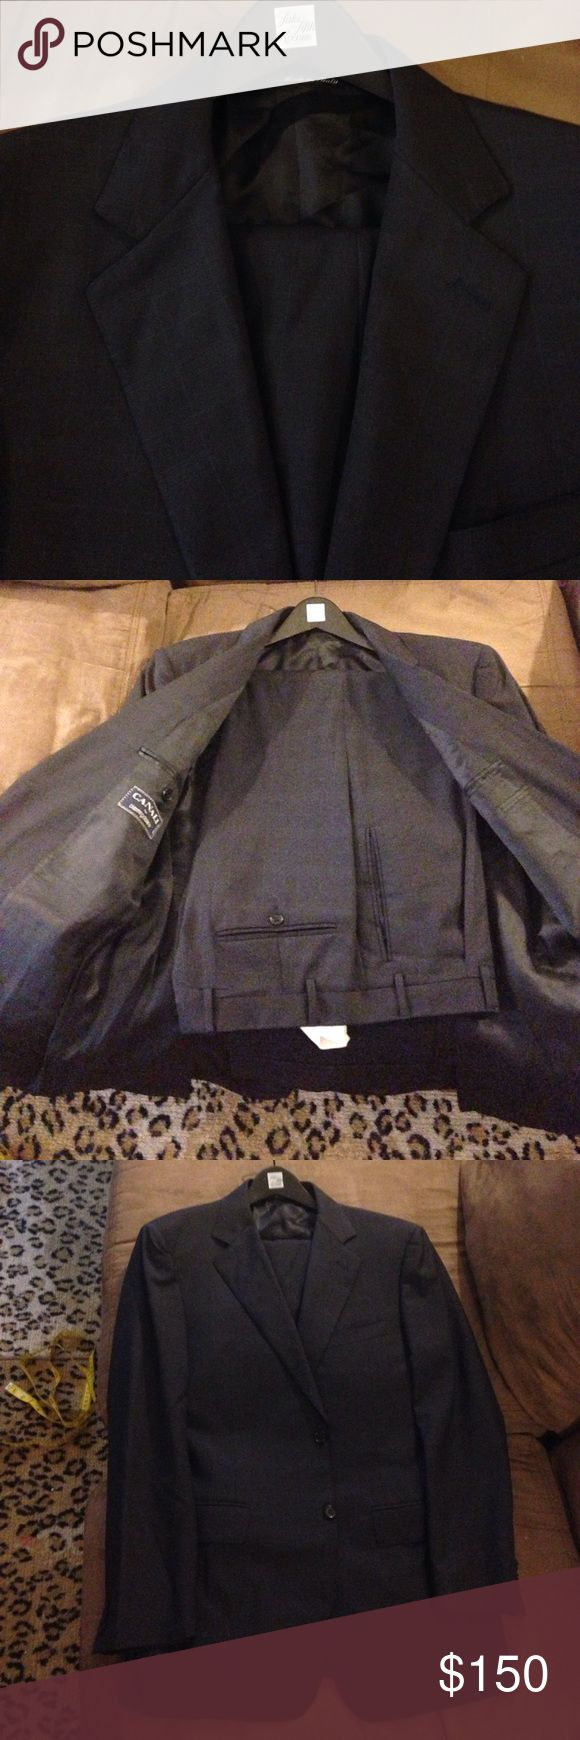 Canali Navy Blue Plaid Suit size 38R Canali Navy Blue with Blue and Grey Plaid Suit size 38R Regular, 2 Button and Double Vented! Pants are a size 32x31, Pleated and cuffed! Like new! Please make REASONABLE offers and bundle to save! Canali Suits & Blazers Suits